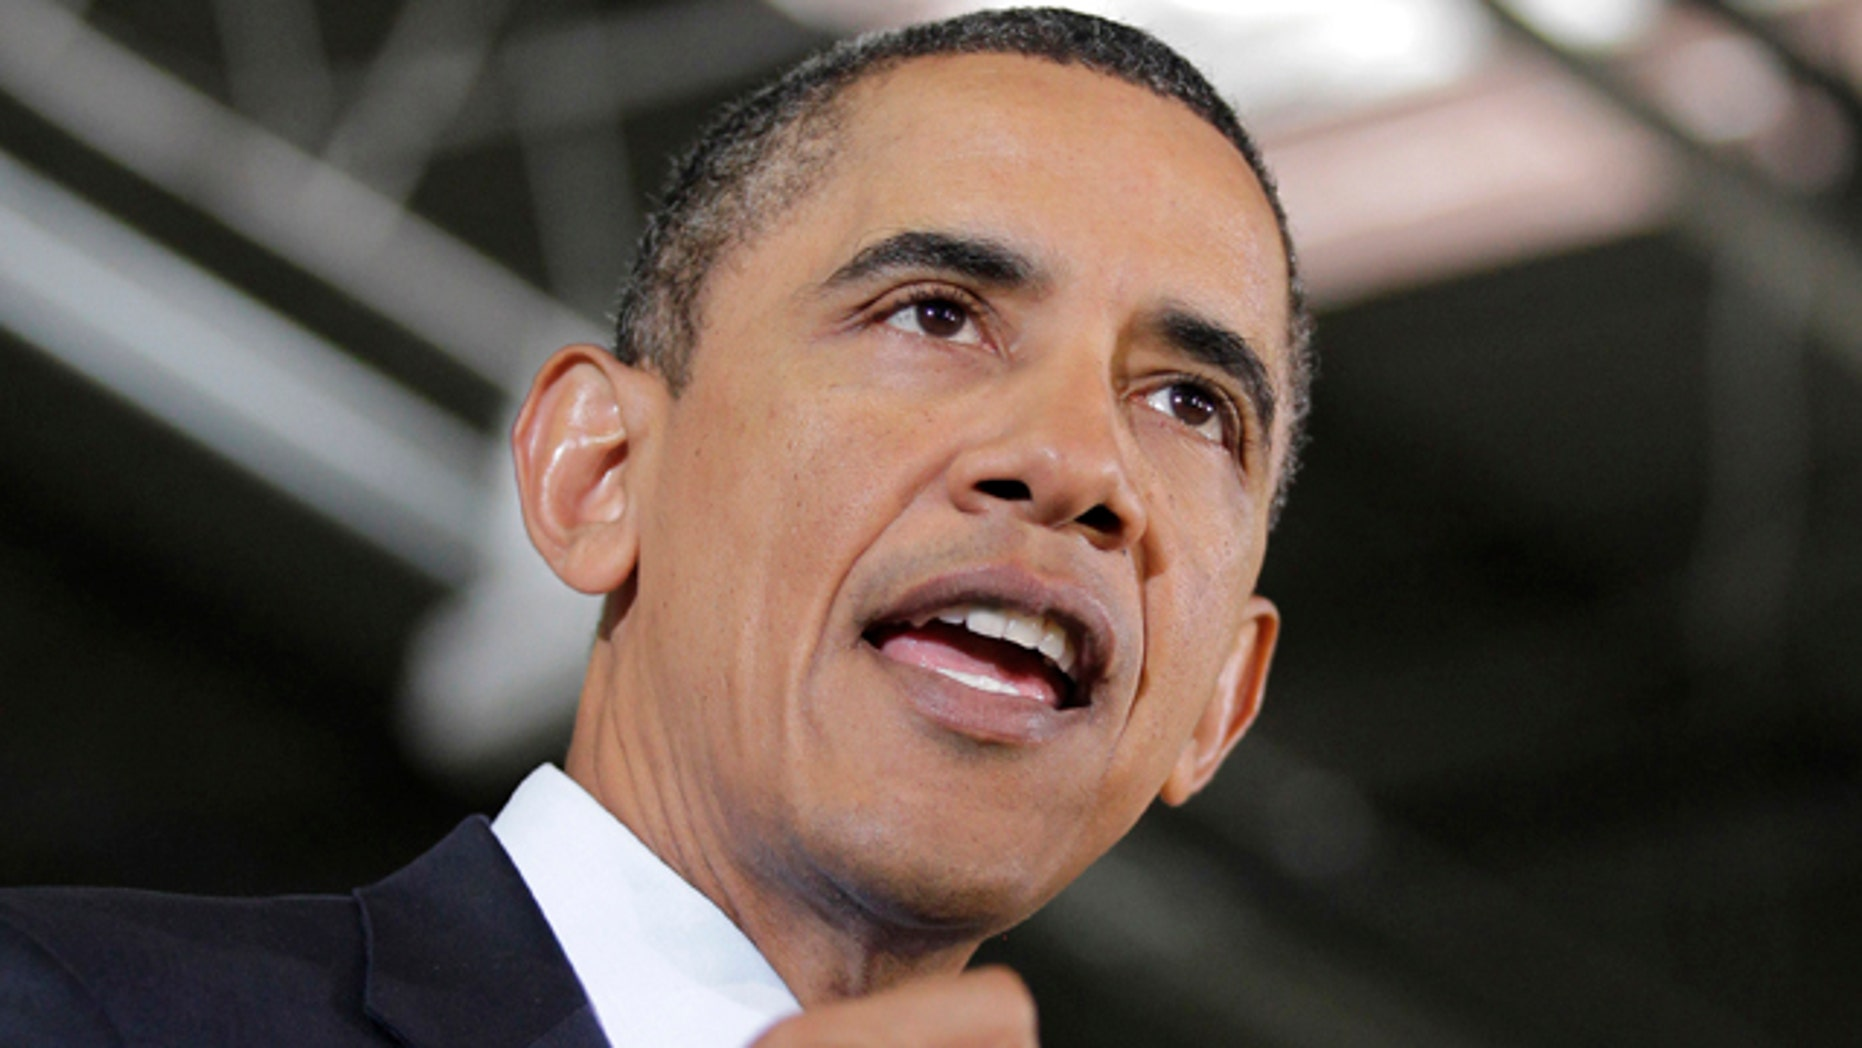 Jan. 7: President Obama talks about the latest reports showing a decline in the unemployment rate as he highlights his economic policies in a speech on the factory floor of the Thompson Creek Window Company in Landover, Md.